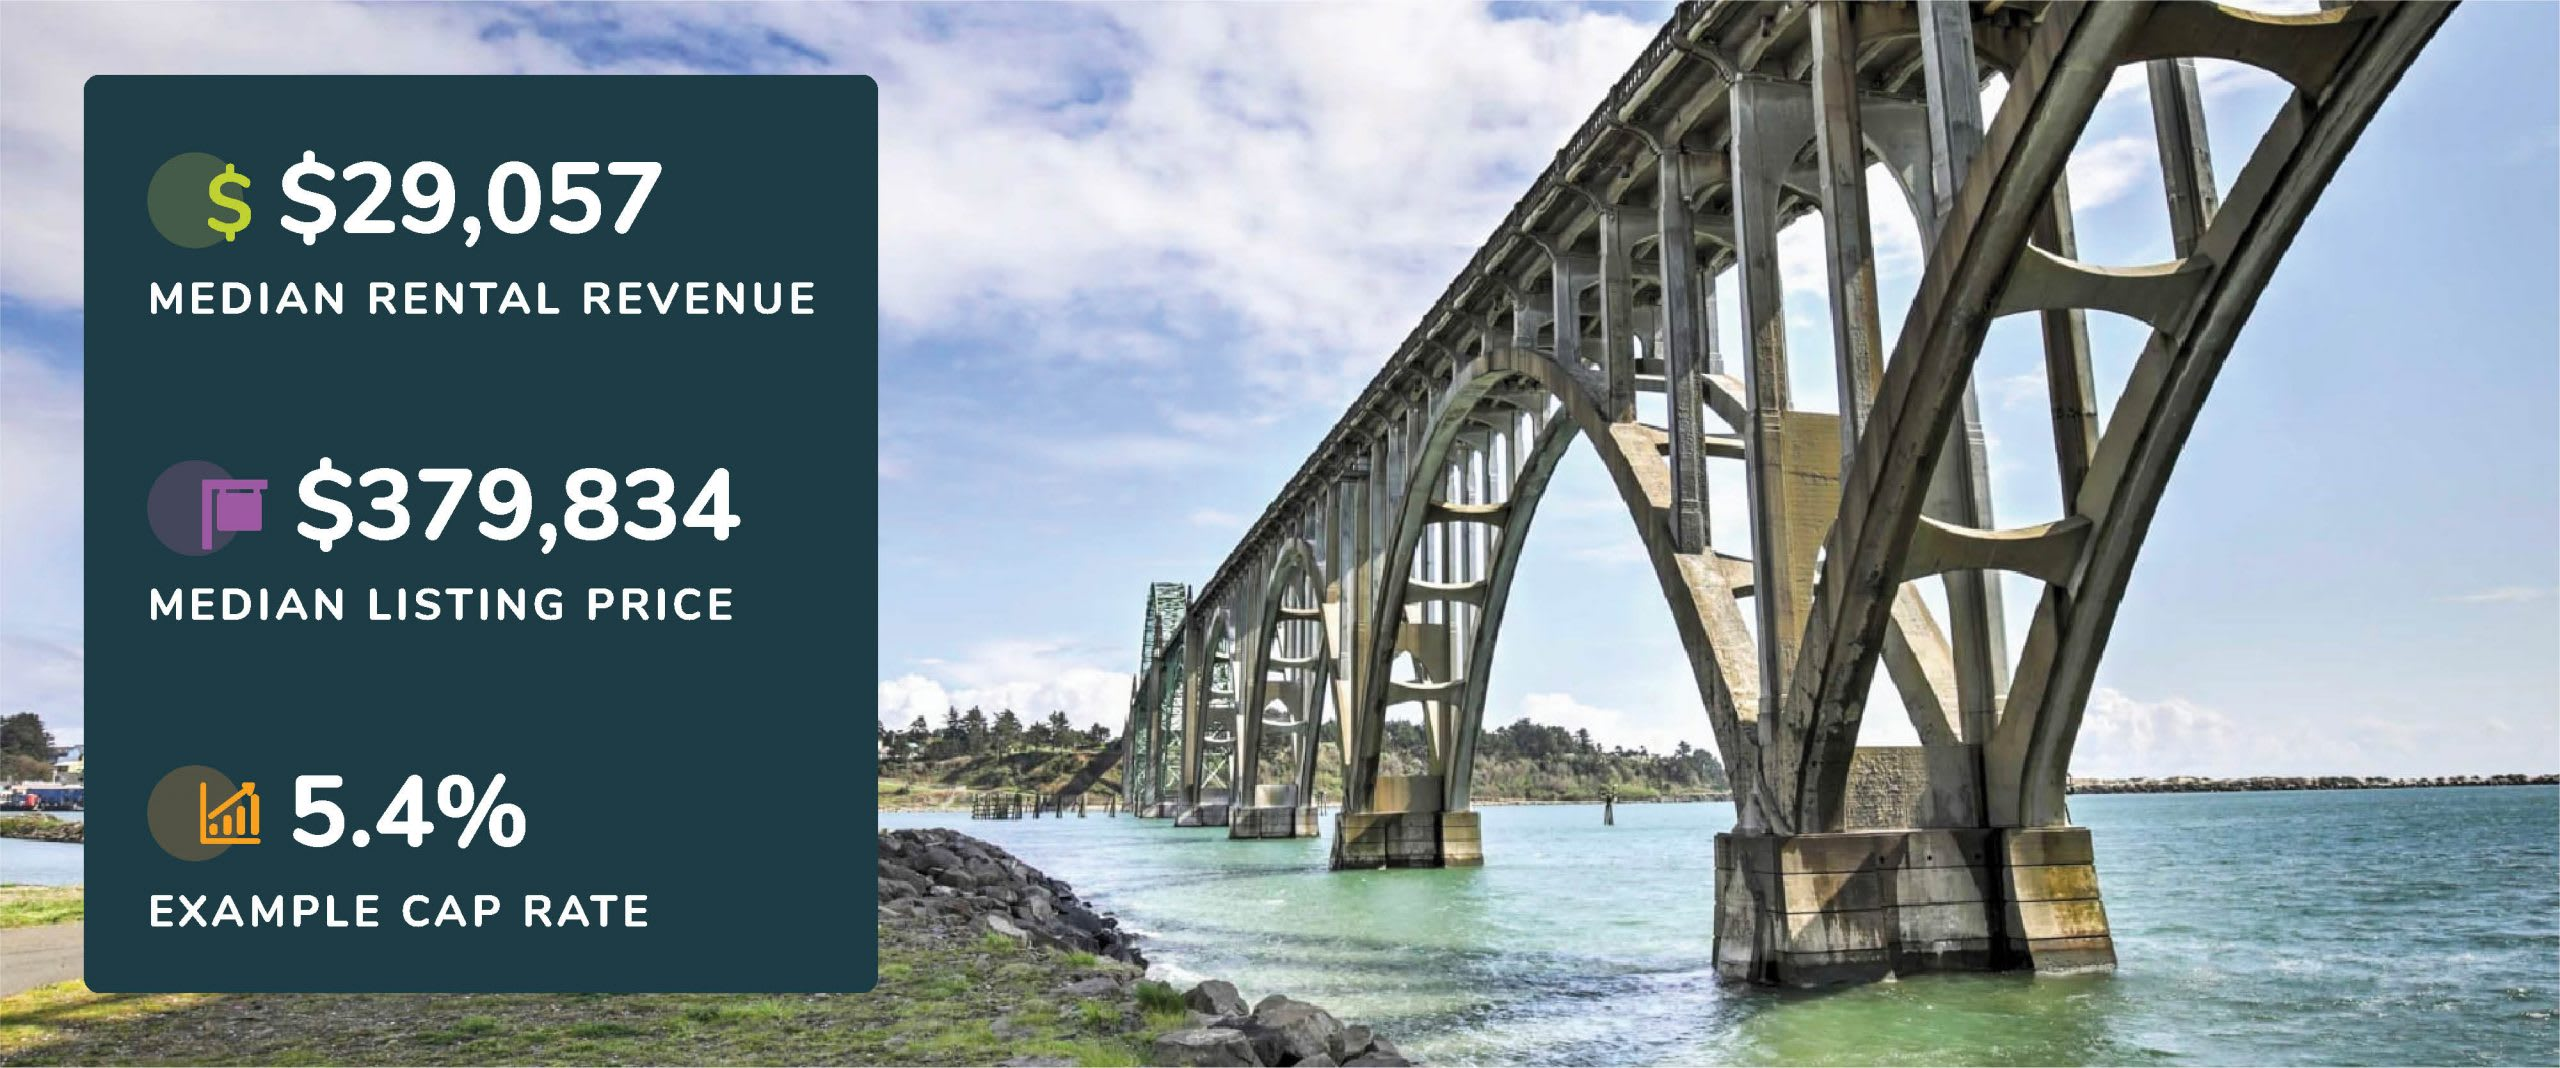 Graphic showing Newport, Oregon median rental revenue, listing price, and example cap rate with a picture of the Yaquina Bay Bridge